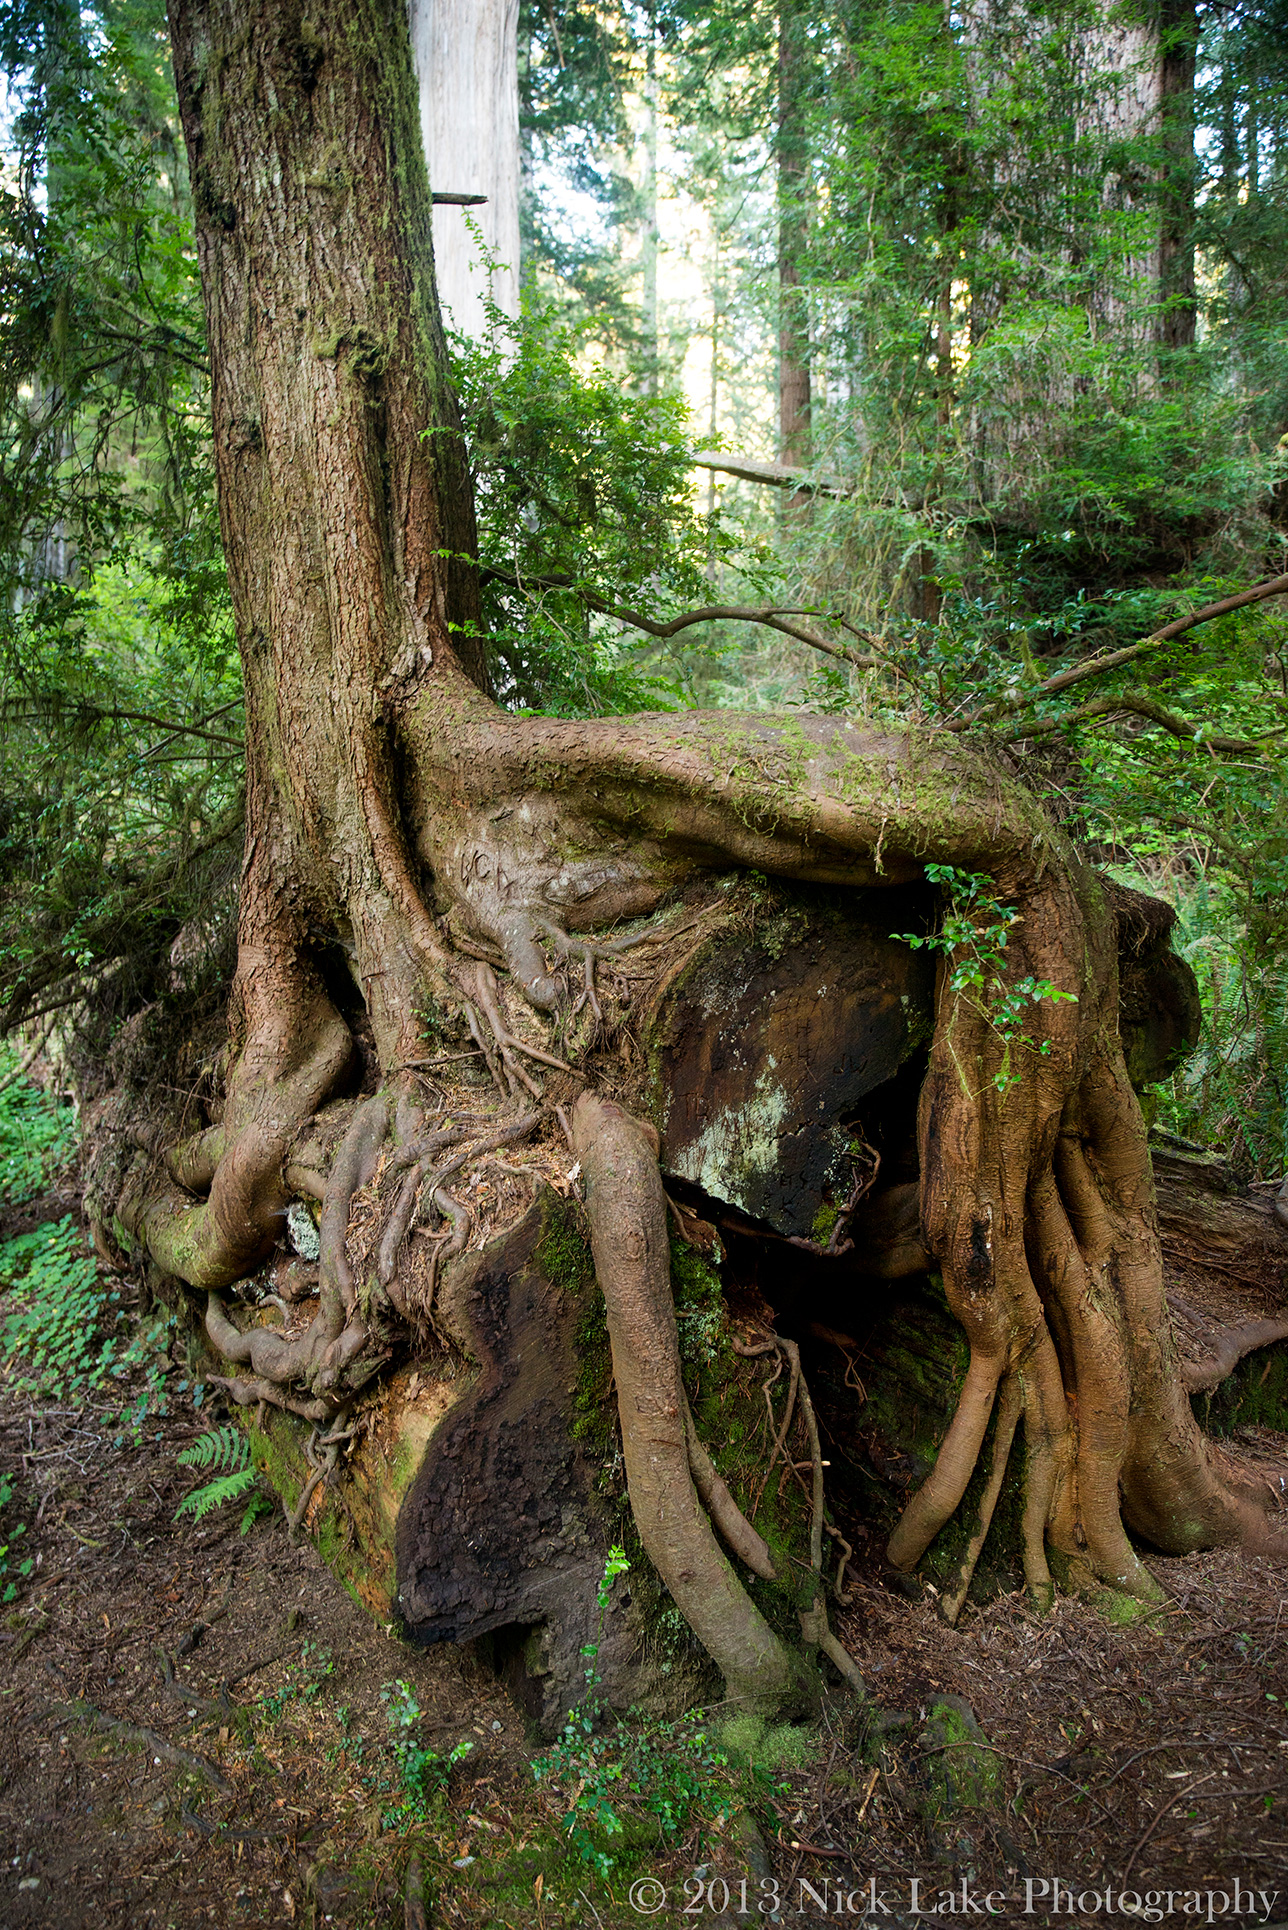 Redwoods are so large that smaller trees often grow on top of them